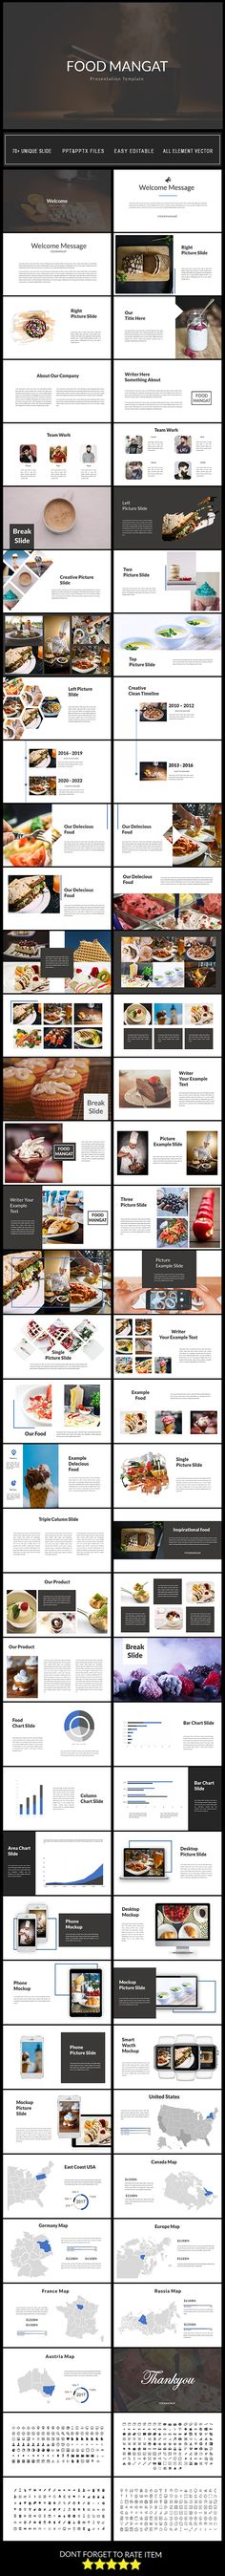 Food Mangat Powerpoint Presentation Template